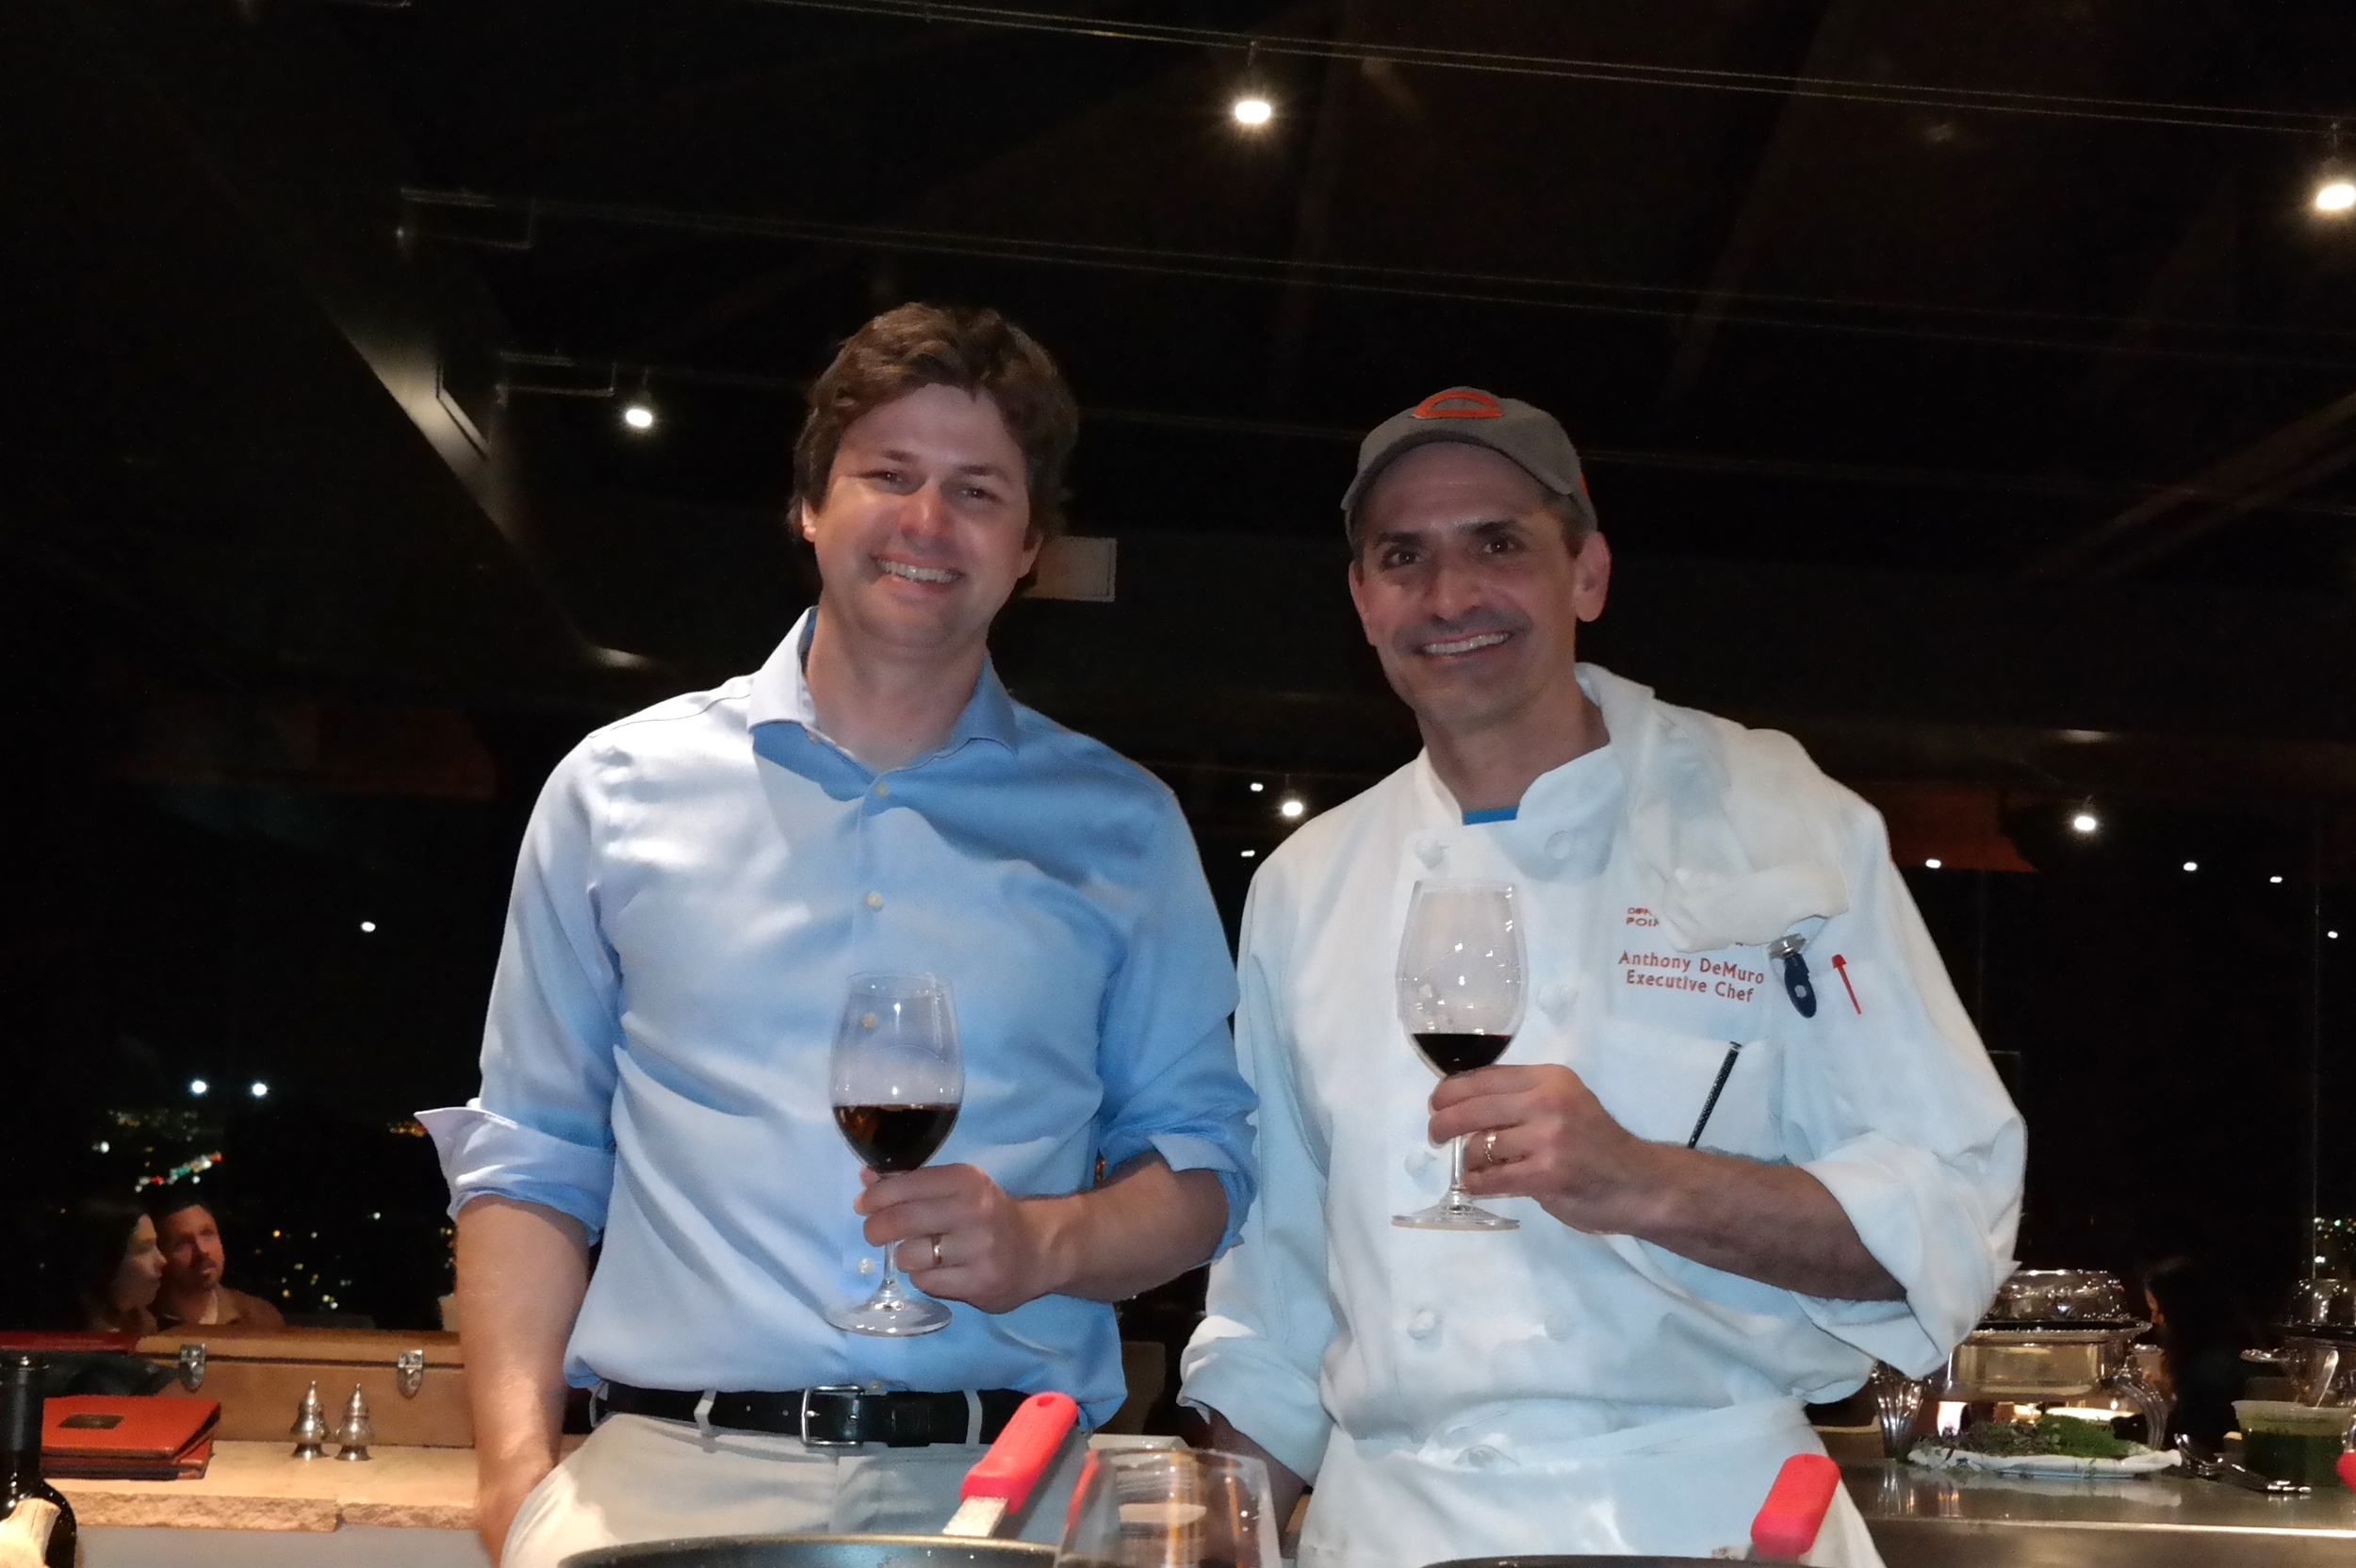 Chef Anthony DeMuro and Steve Nelson of Chalk Hill